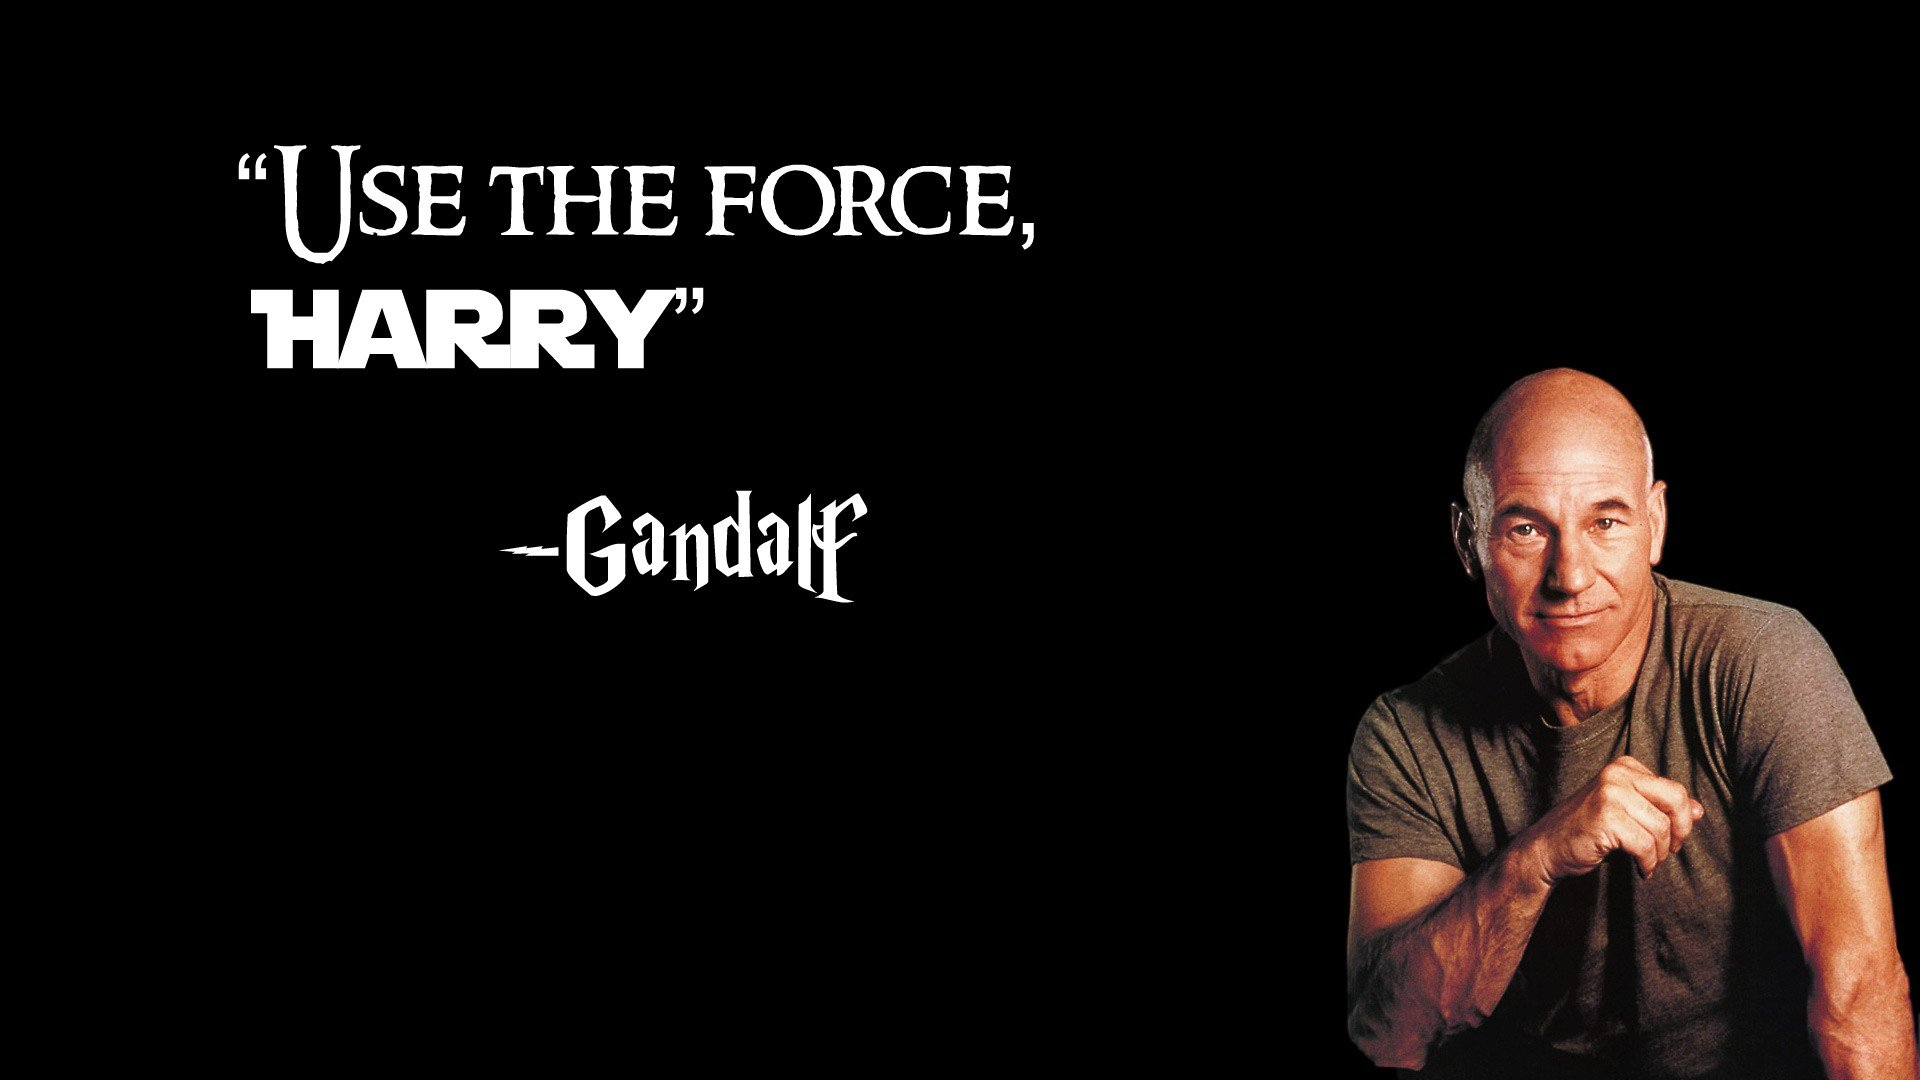 star-wars-harry-potter-black-wallpaper-patrick-stewart-fresh-background-quotes-men-gandalf-humor-images-rings